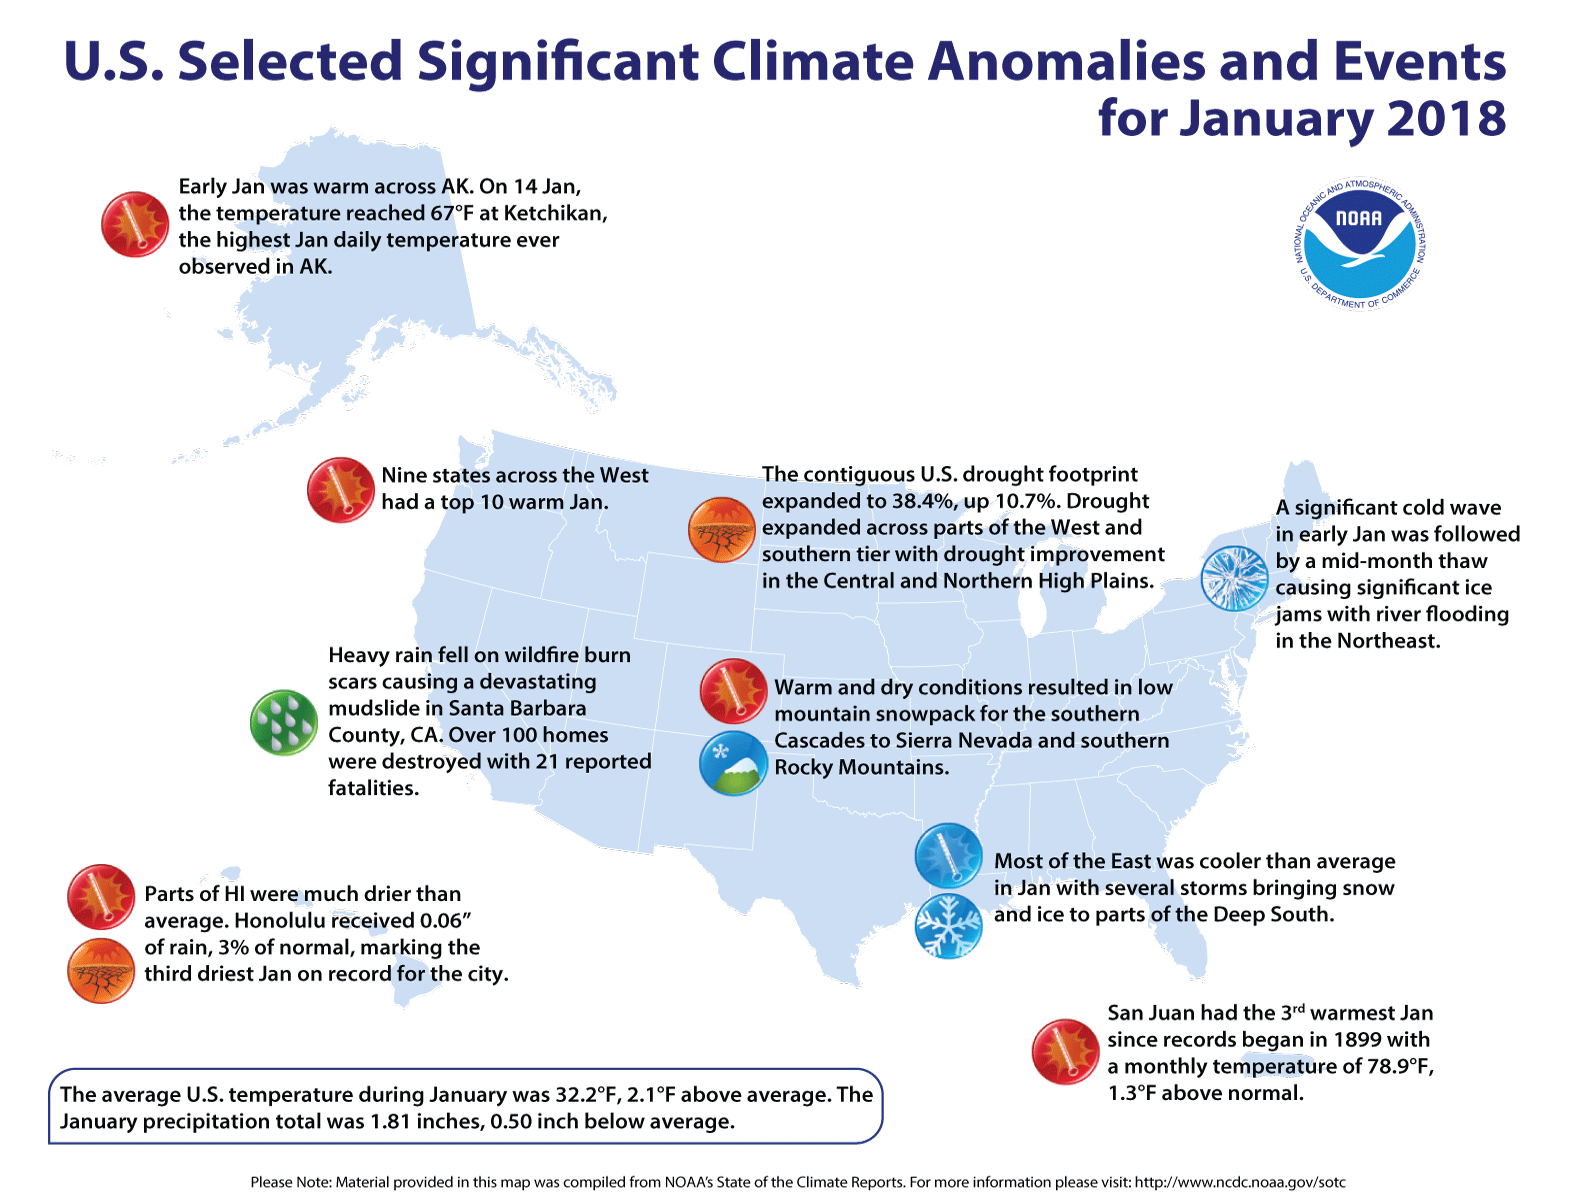 Map of U.S. selected significant climate anomalies and events for January 2018